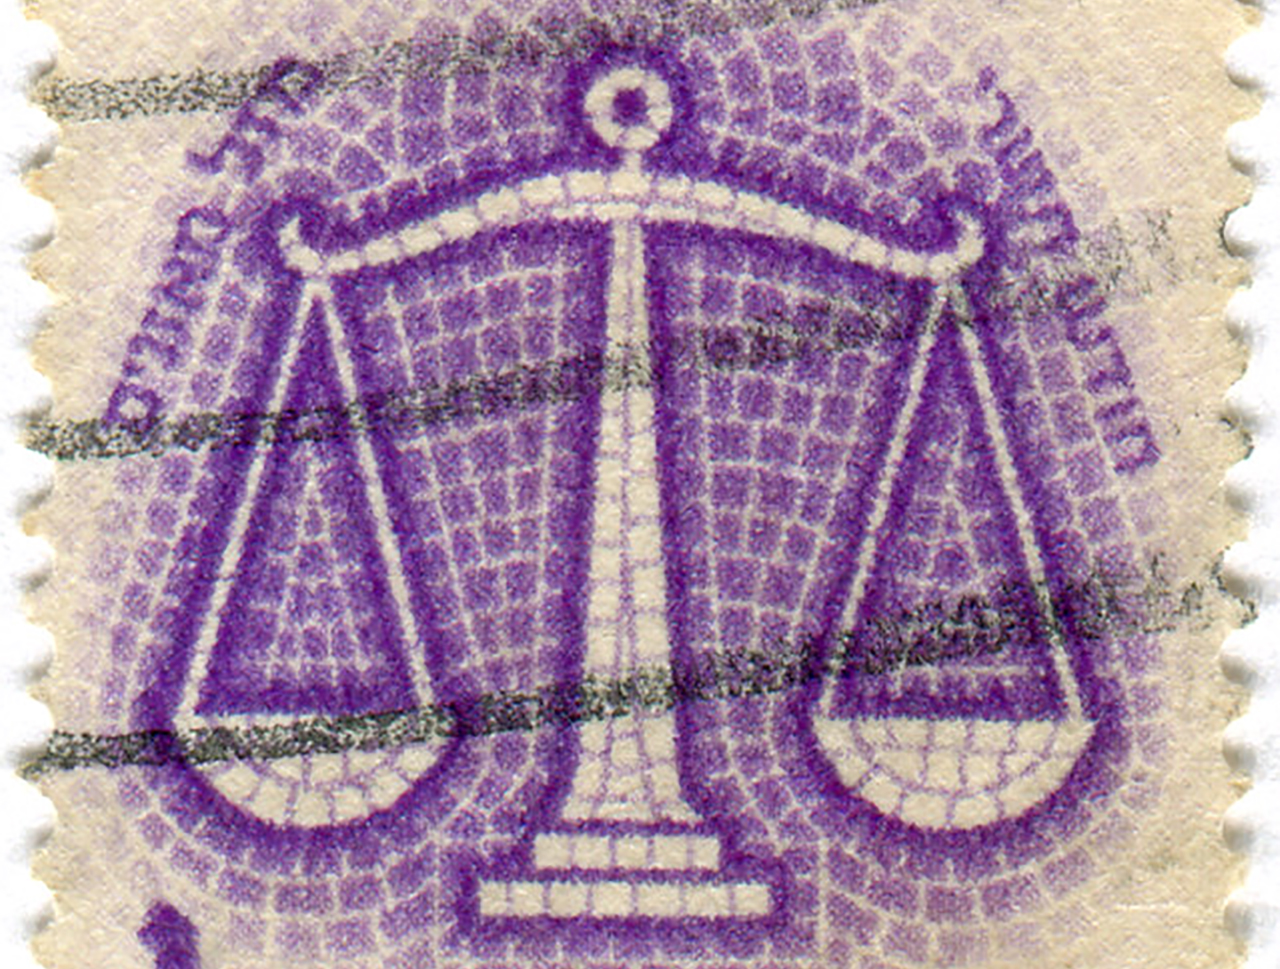 A 1961 Israeli postal stamp depicting Libra, the sign of the month of Tishrei. (Photo/Flickr-Karen Horton CC BY-NC 2.0)